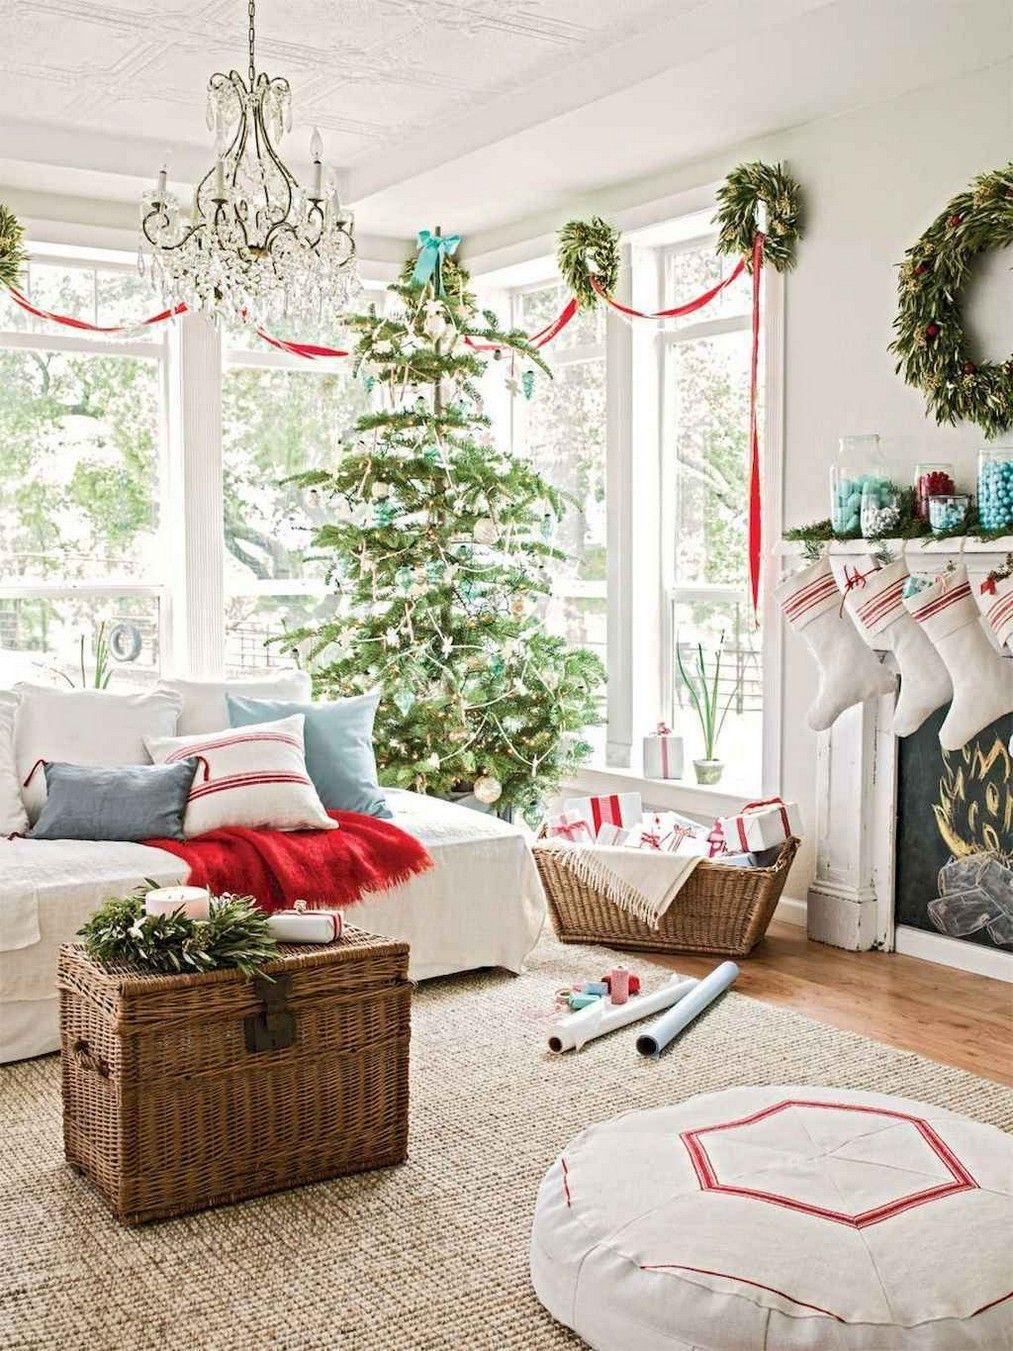 60+ most cozy and elegant christmas living room decoration inspirational ideas - page 2 of 67